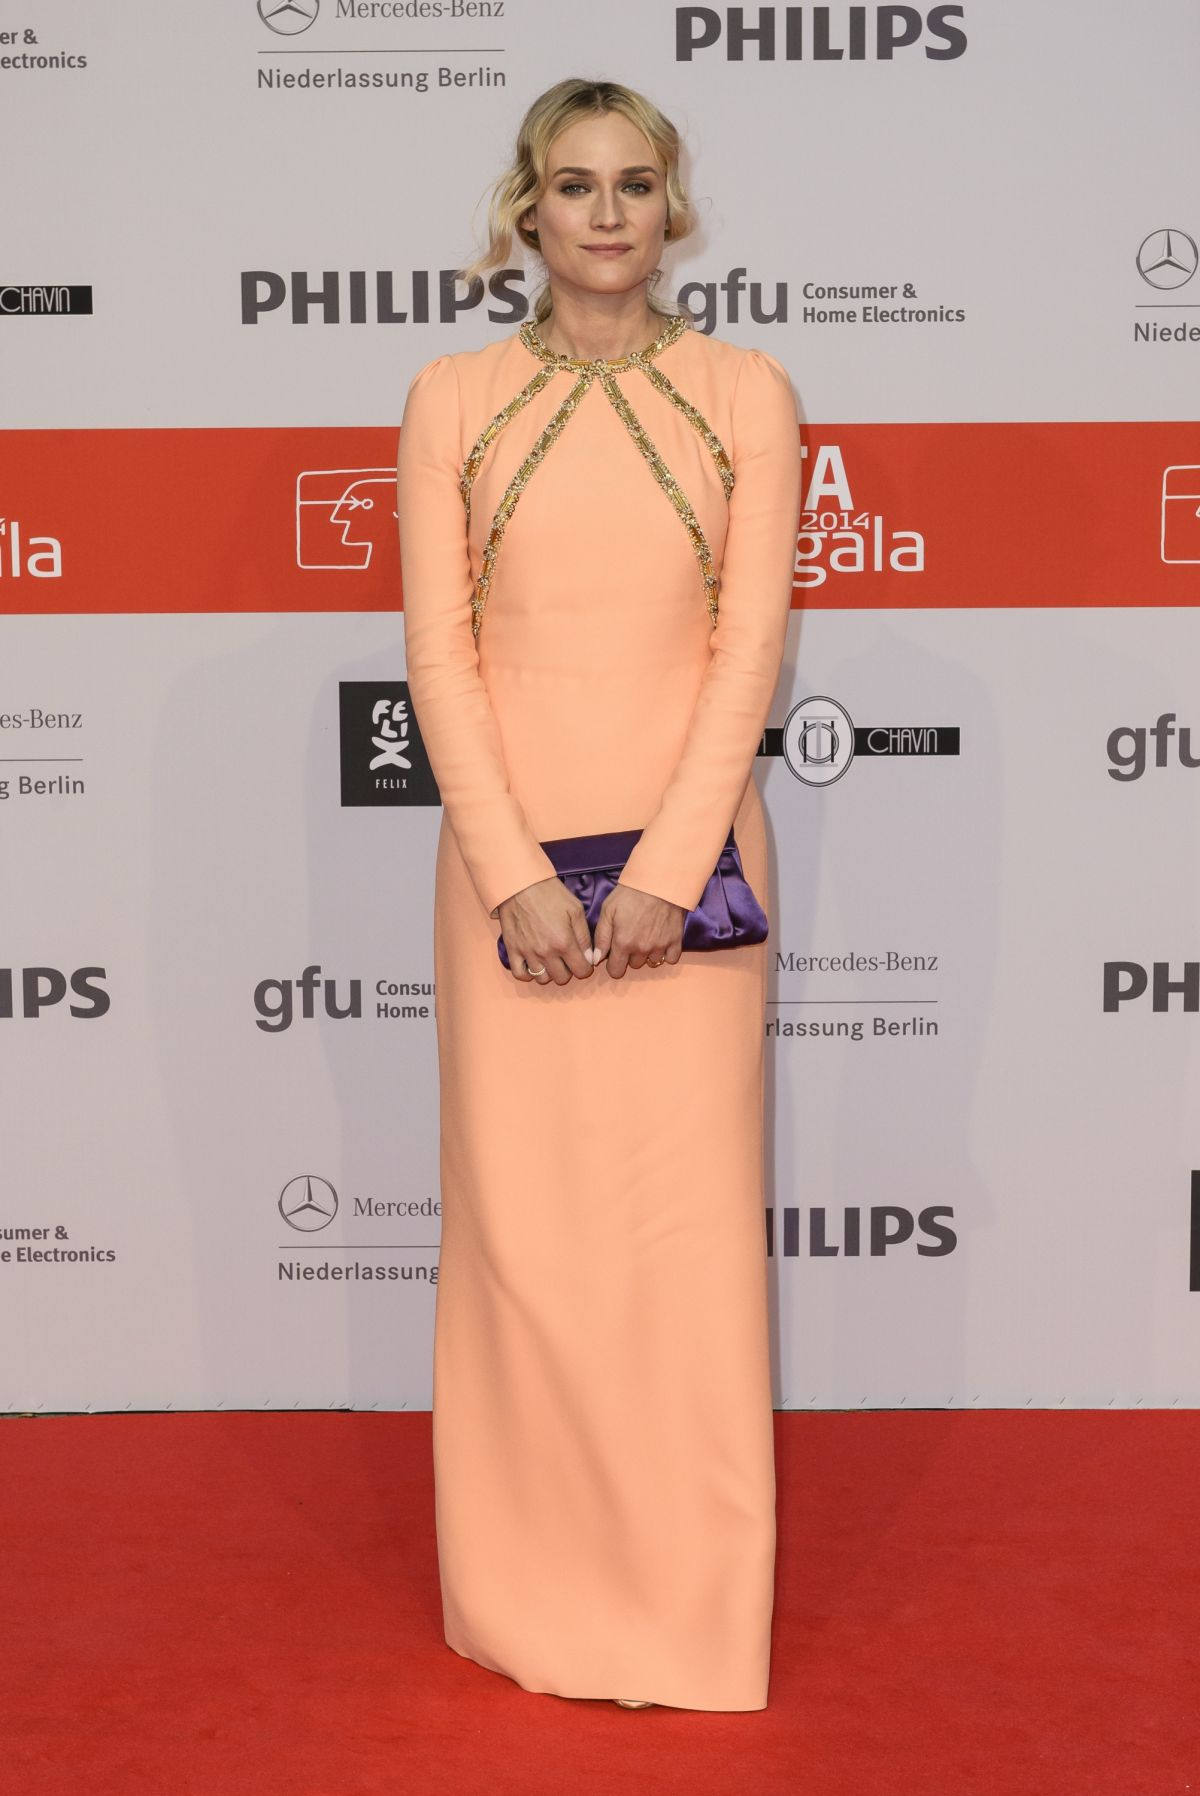 diane-kruger-at-ifa-2014-consumer-technology-trade-fair-opening-gala_1